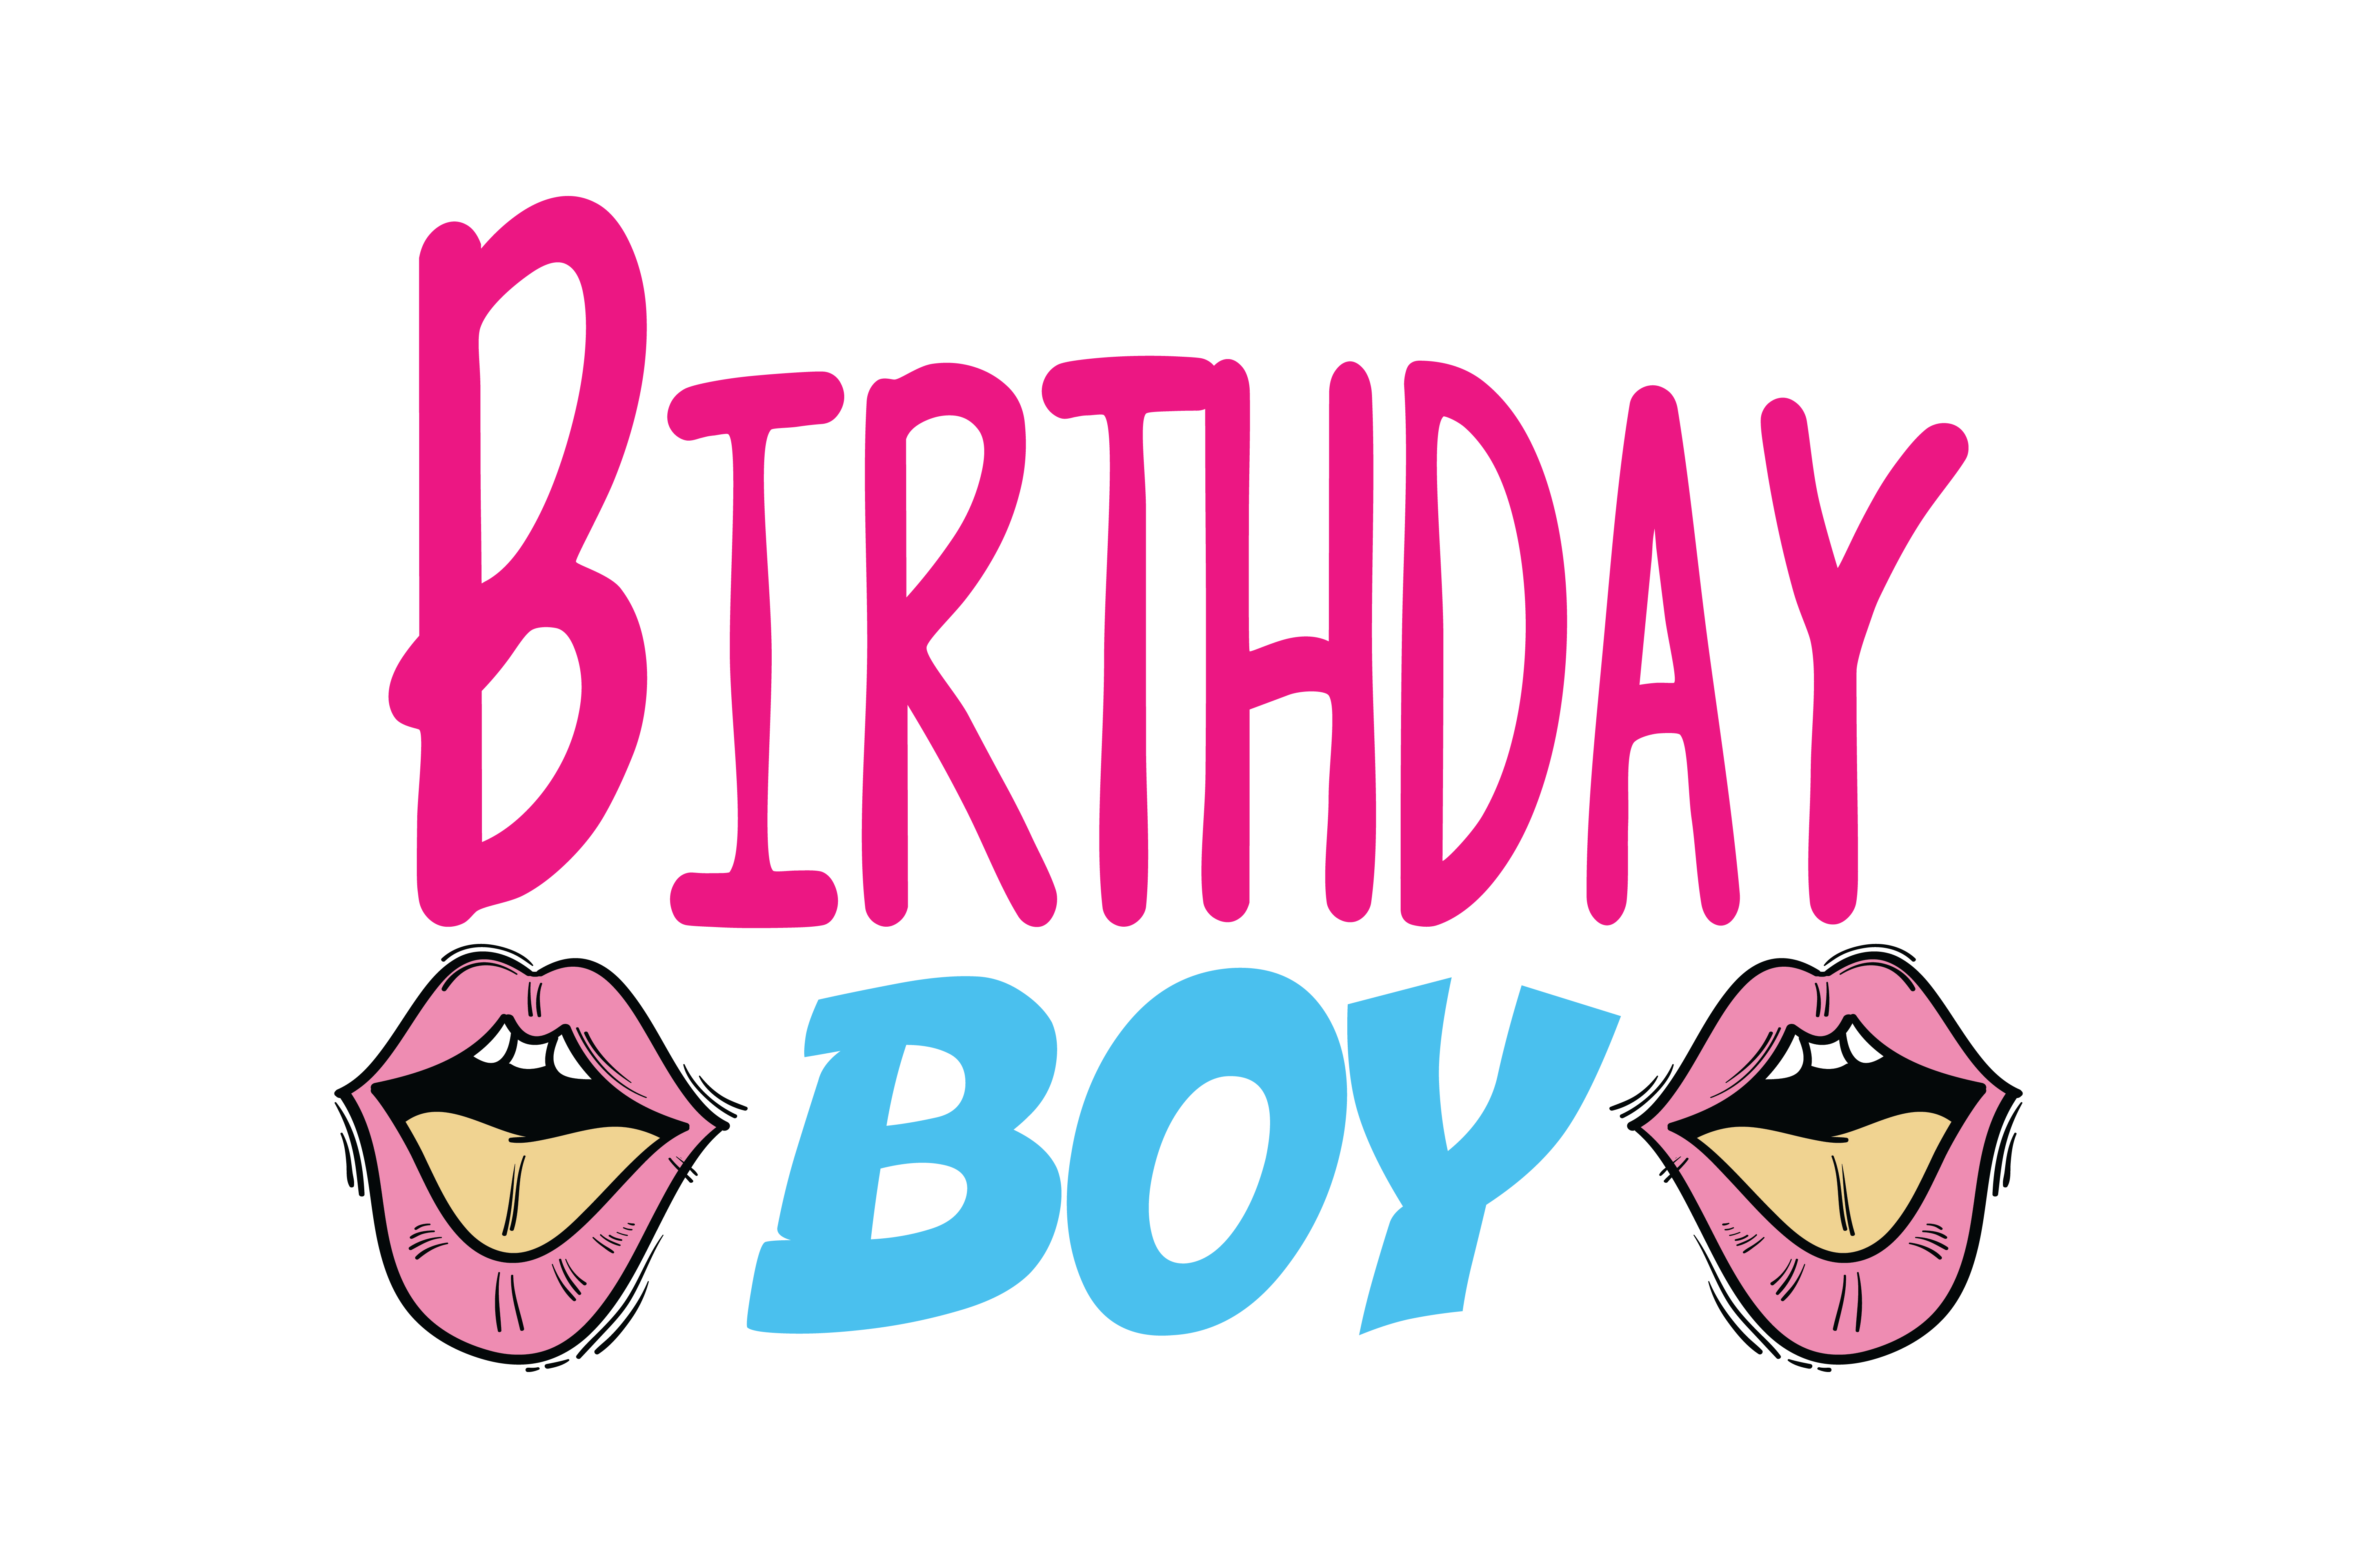 Download Free Birthday Boy Quote Svg Cut Graphic By Thelucky Creative Fabrica for Cricut Explore, Silhouette and other cutting machines.